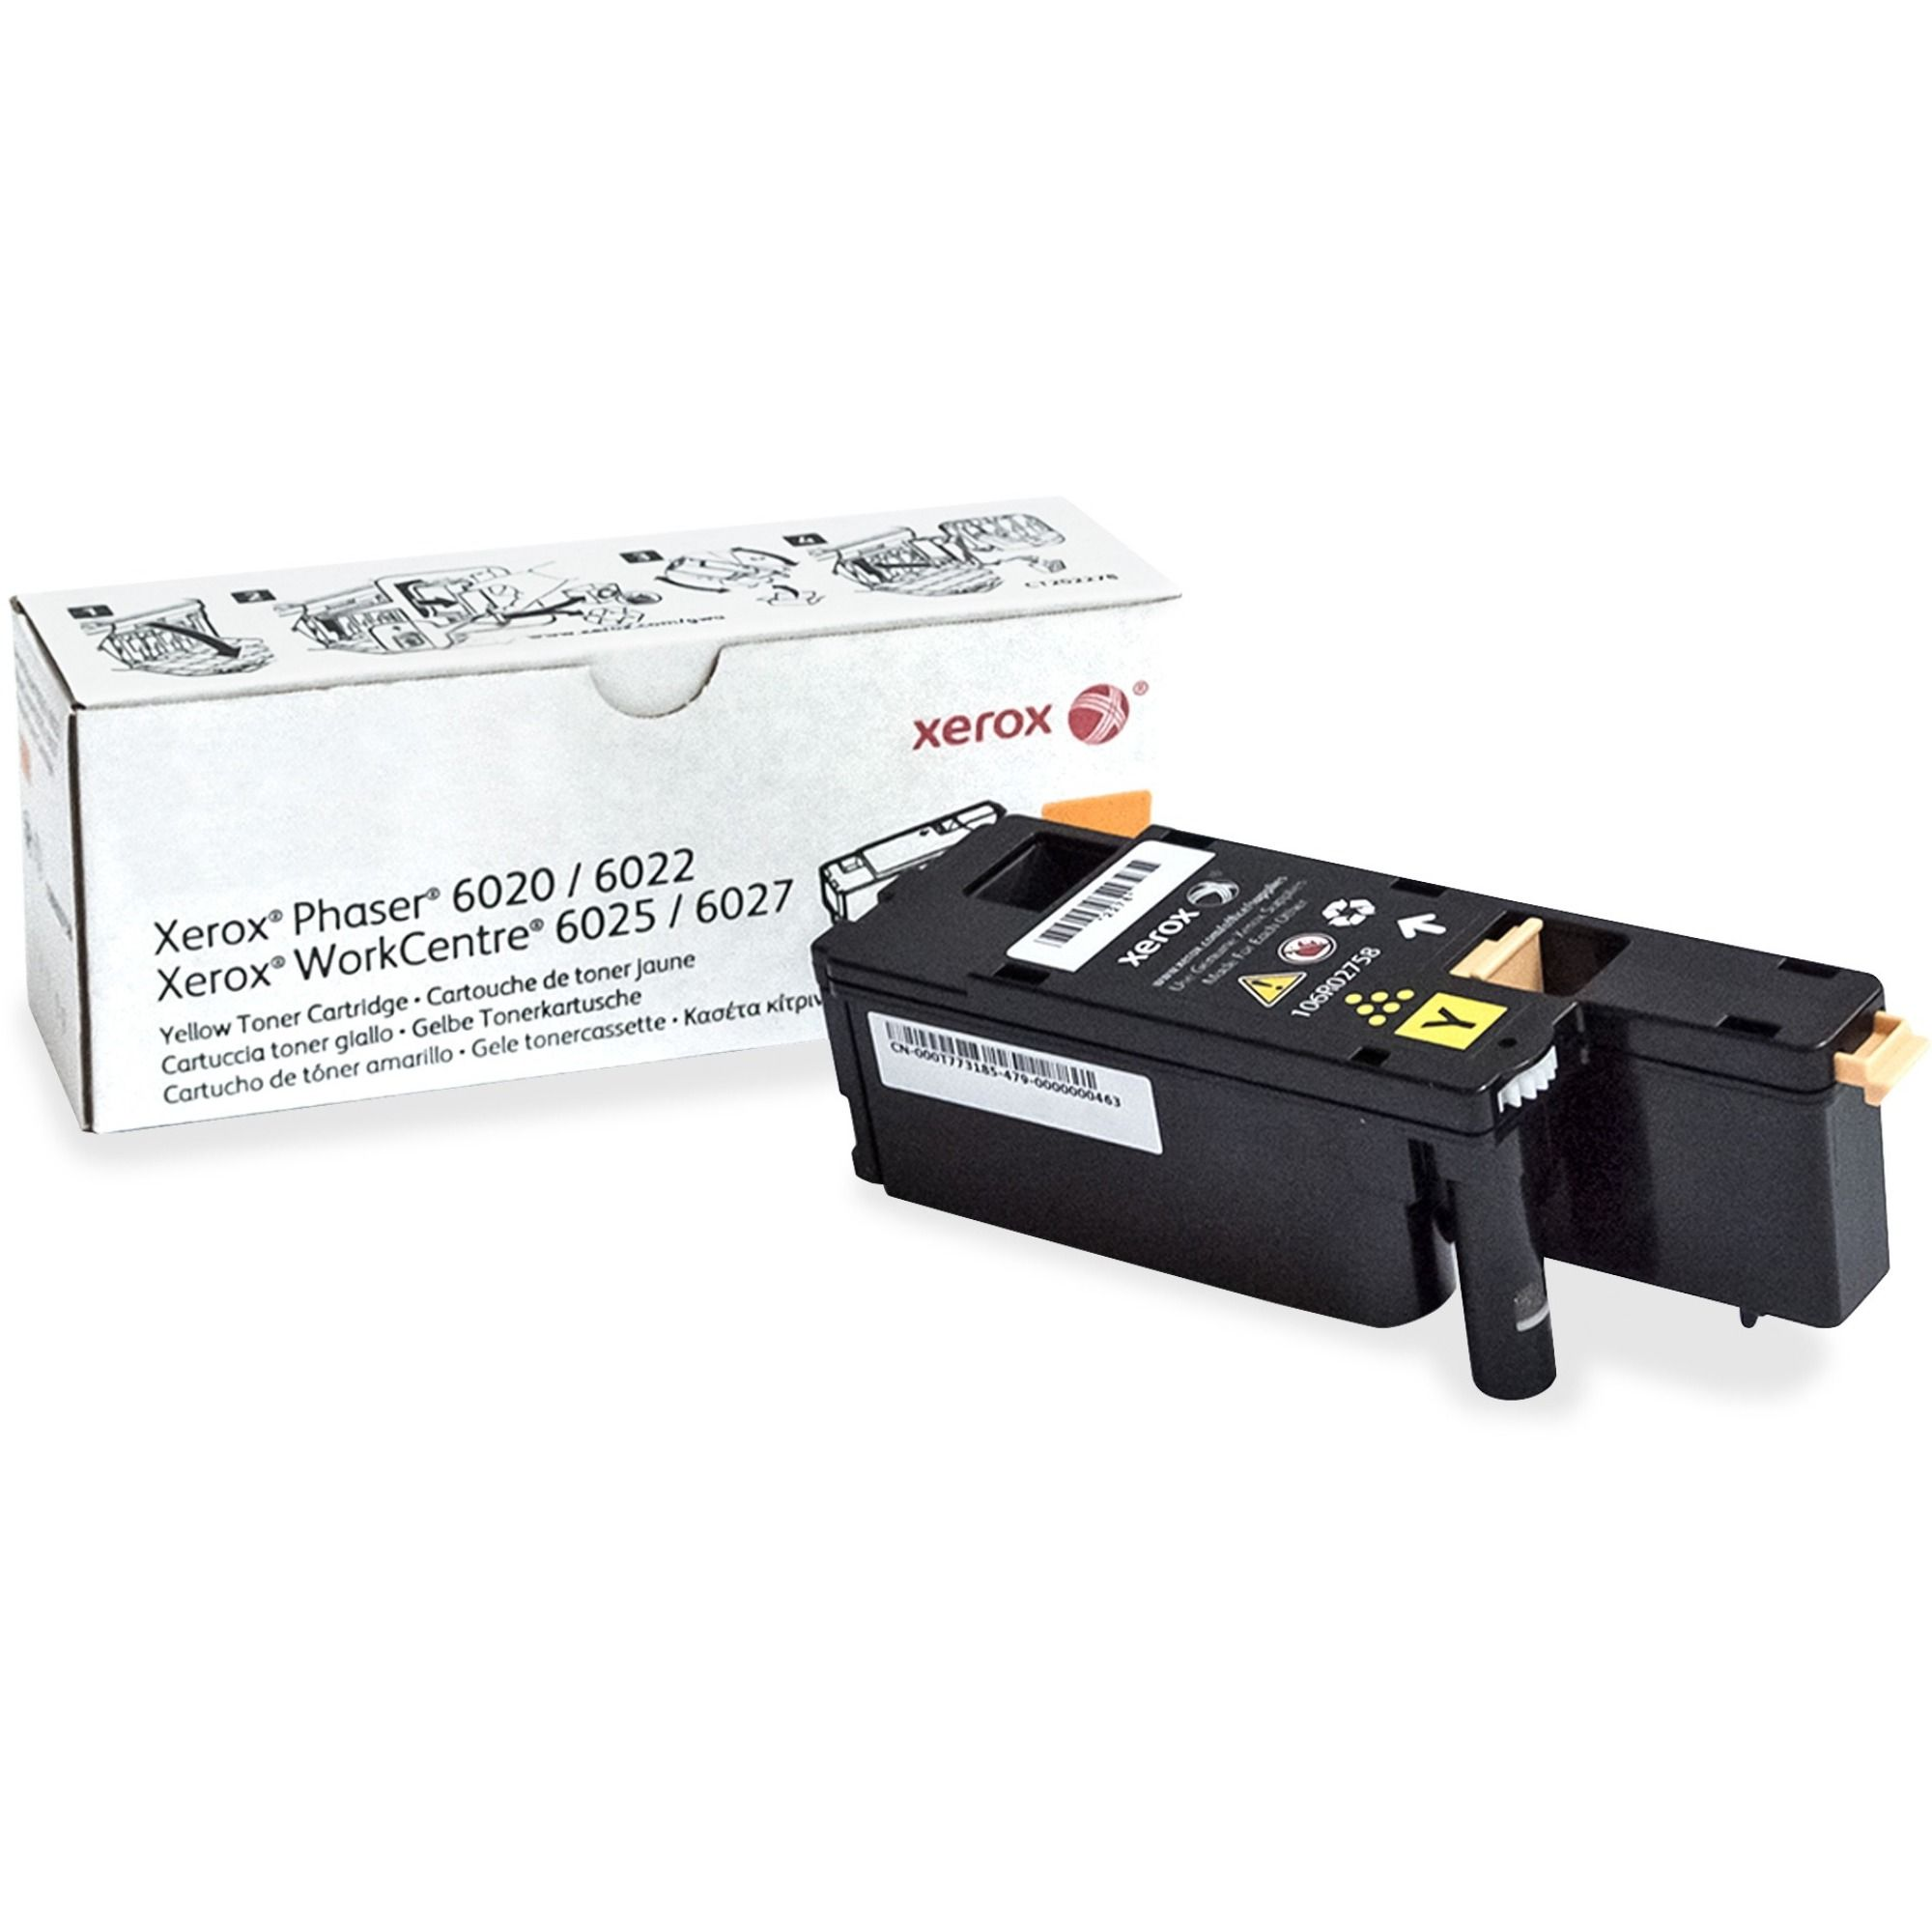 Xerox Original Toner Cartridge Laser Standard Yield 1000 Pages Yellow 1 Each Toner Cartridge Laser Toner Cartridge Xerox Toner